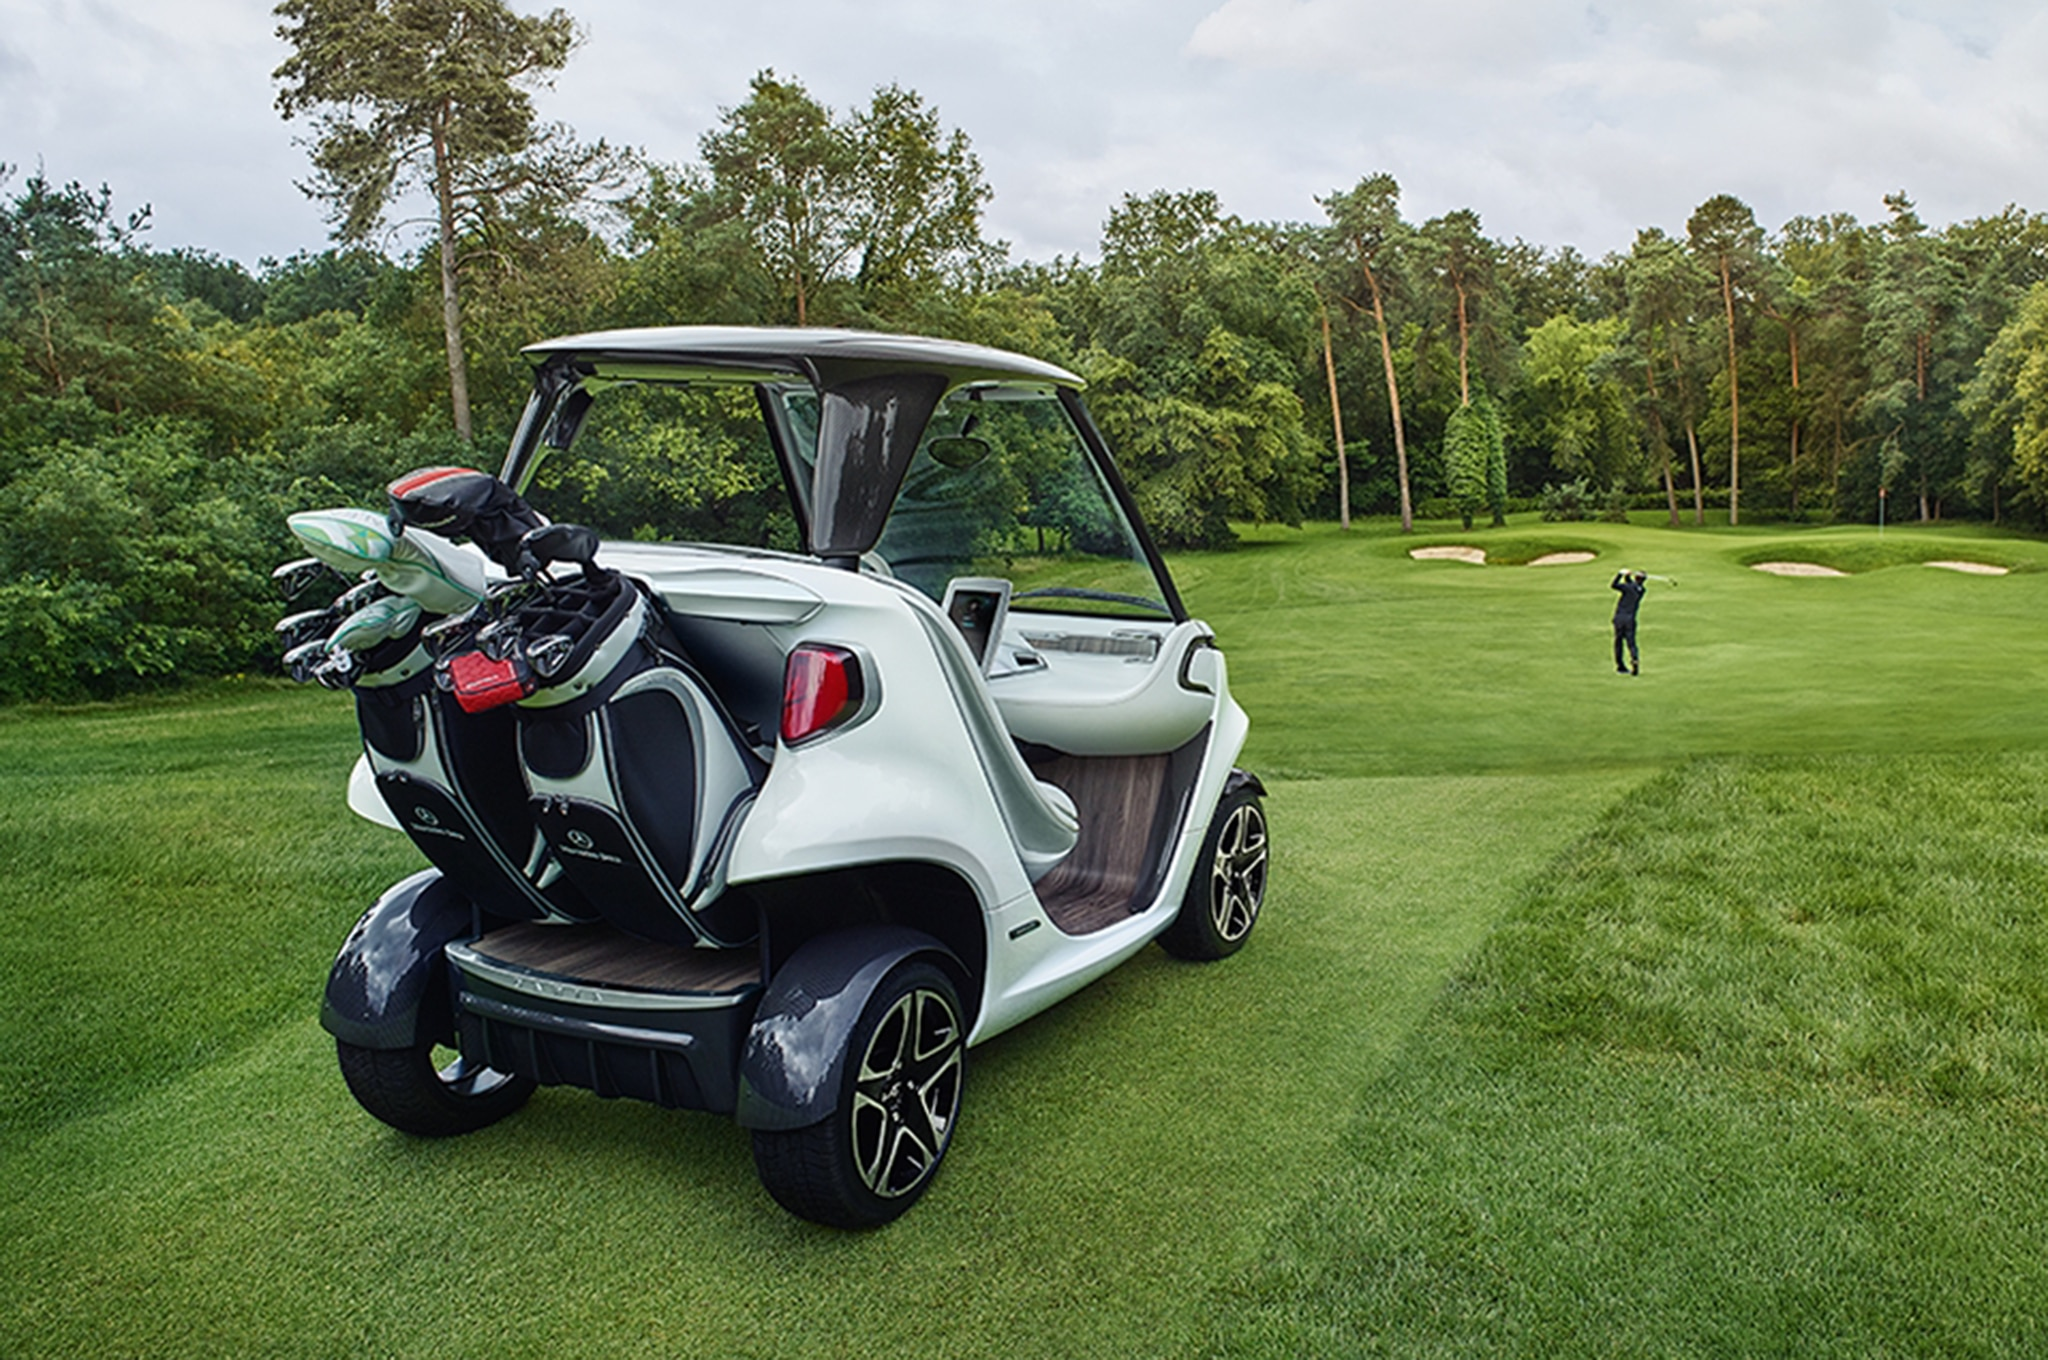 golf carts for disabled, golf carts for fire depts, golf carts vehicle, on wood golf cart trunk